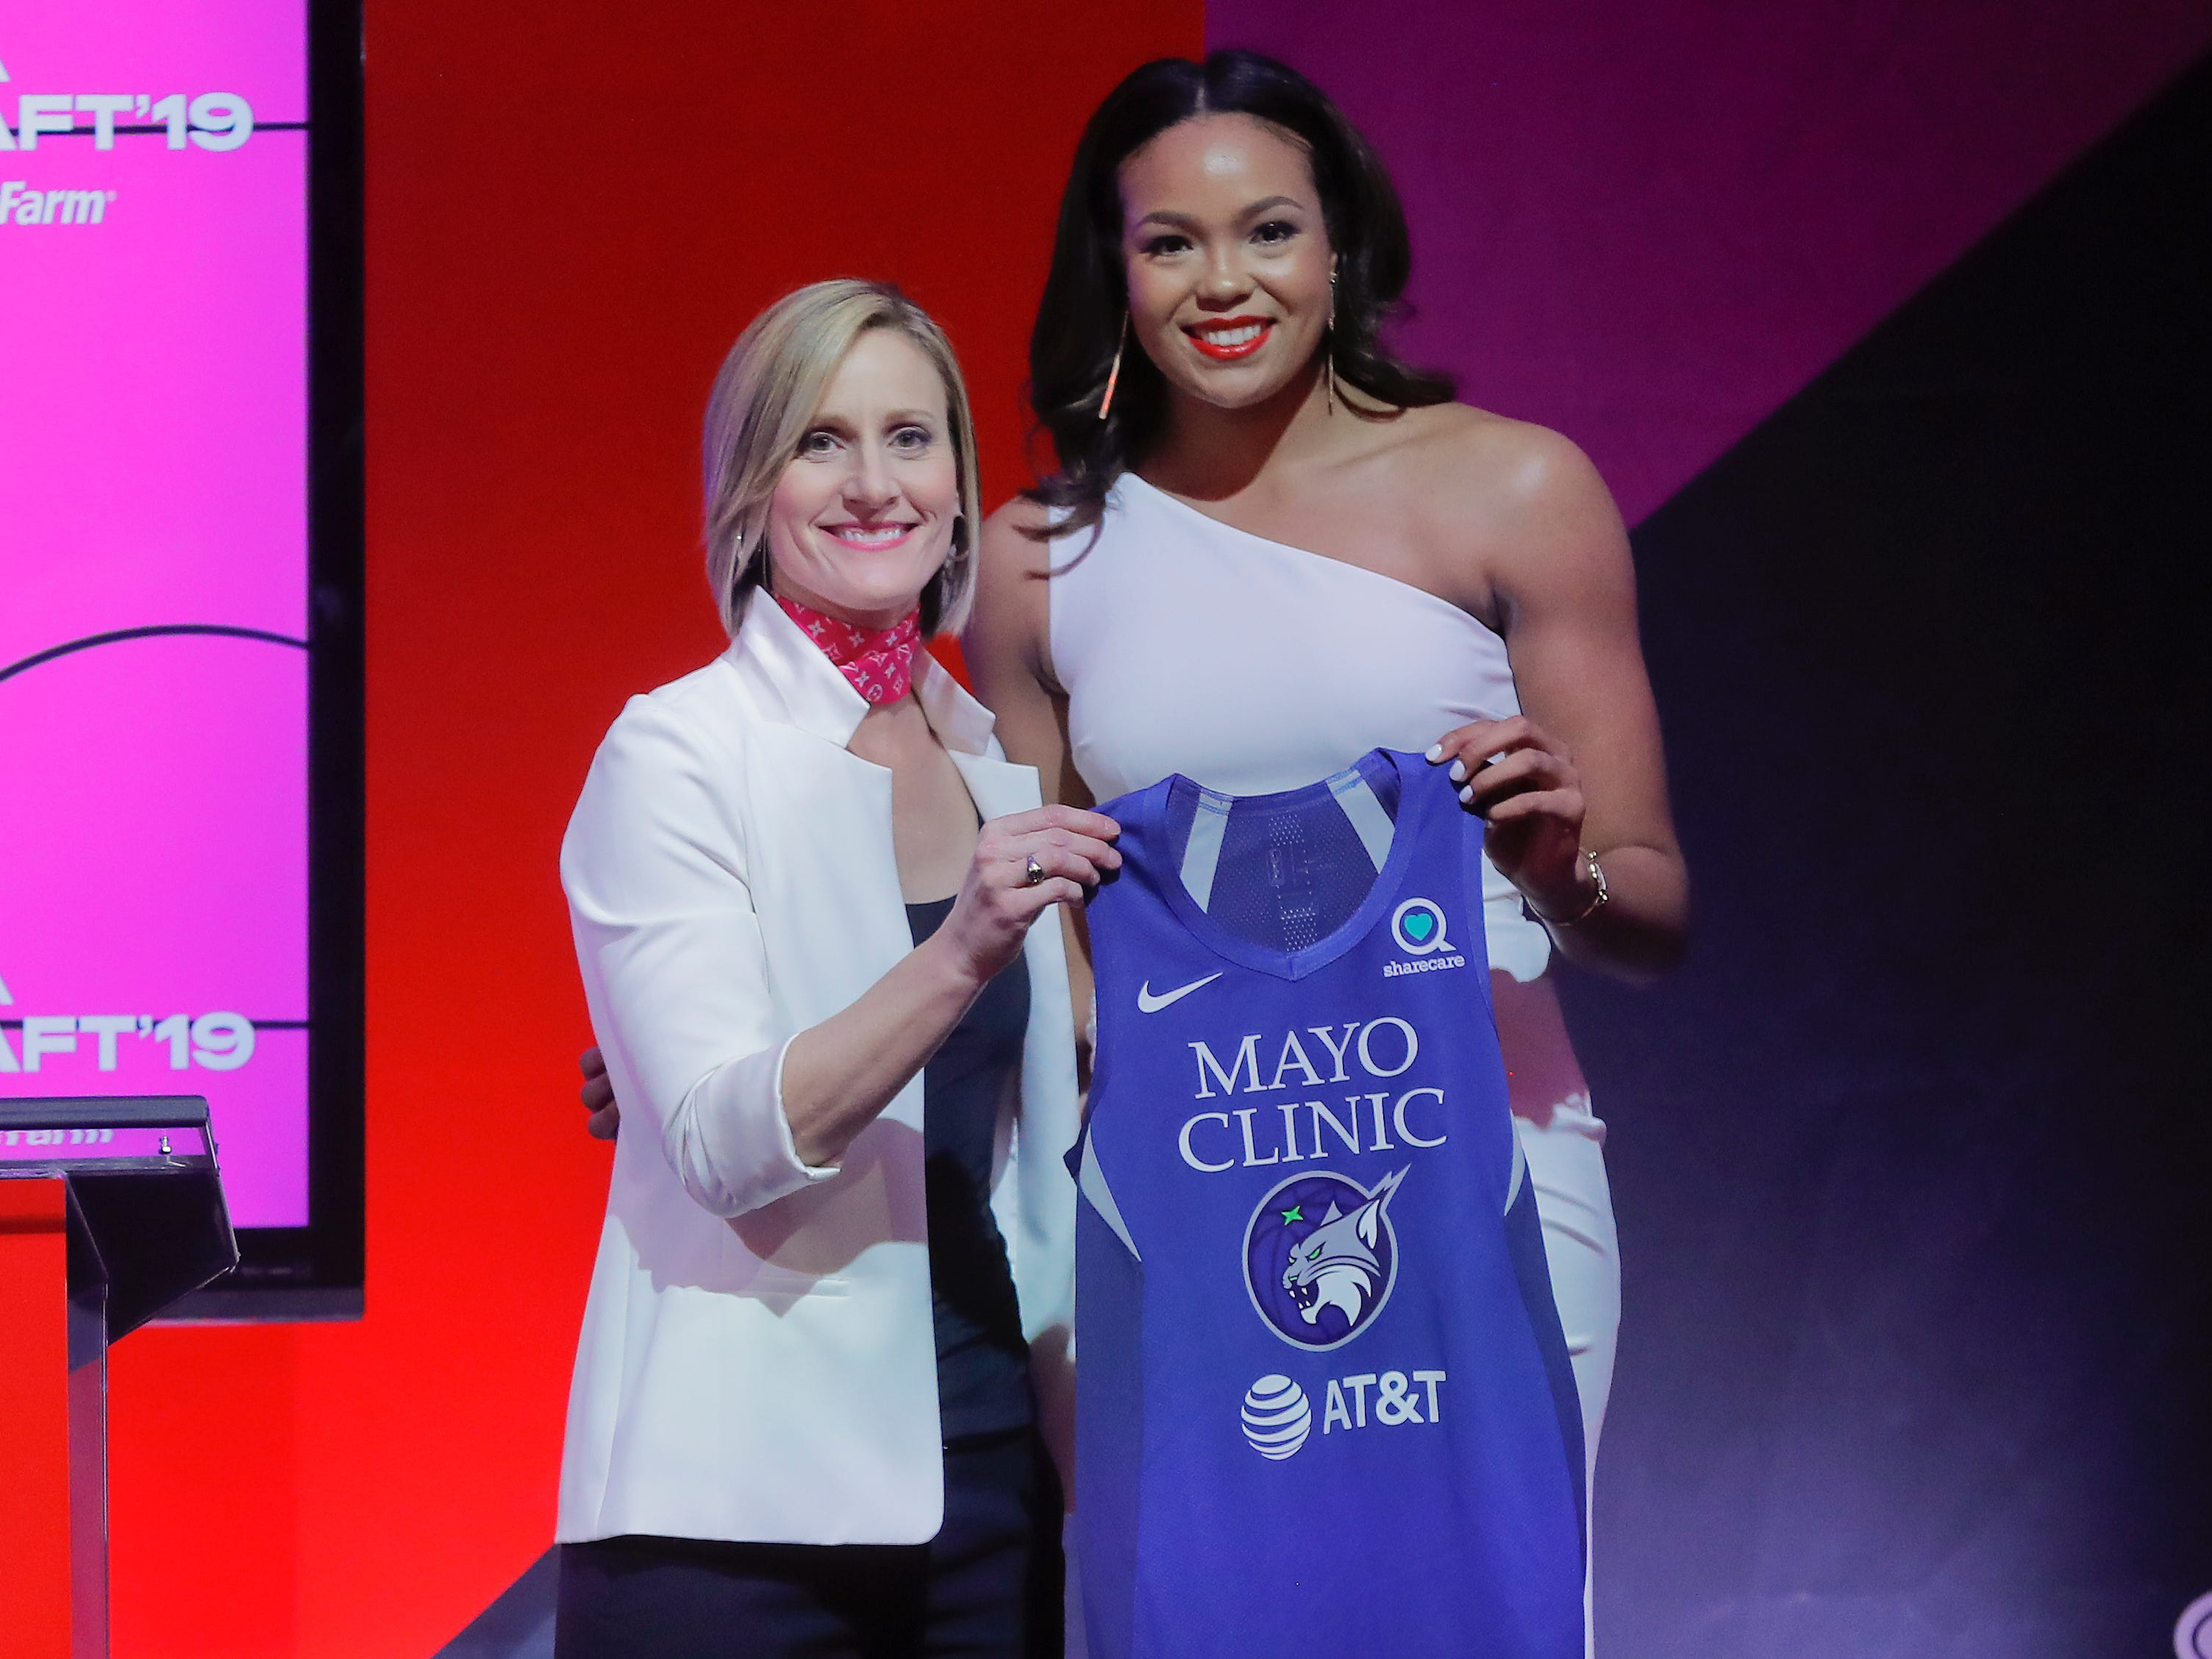 Connecticut's Napheesa Collier poses for a photo with WNBA COO Christy Hedgpeth after being selected by the Minnesota Lynx as the sixth overall pick in the WNBA draft.